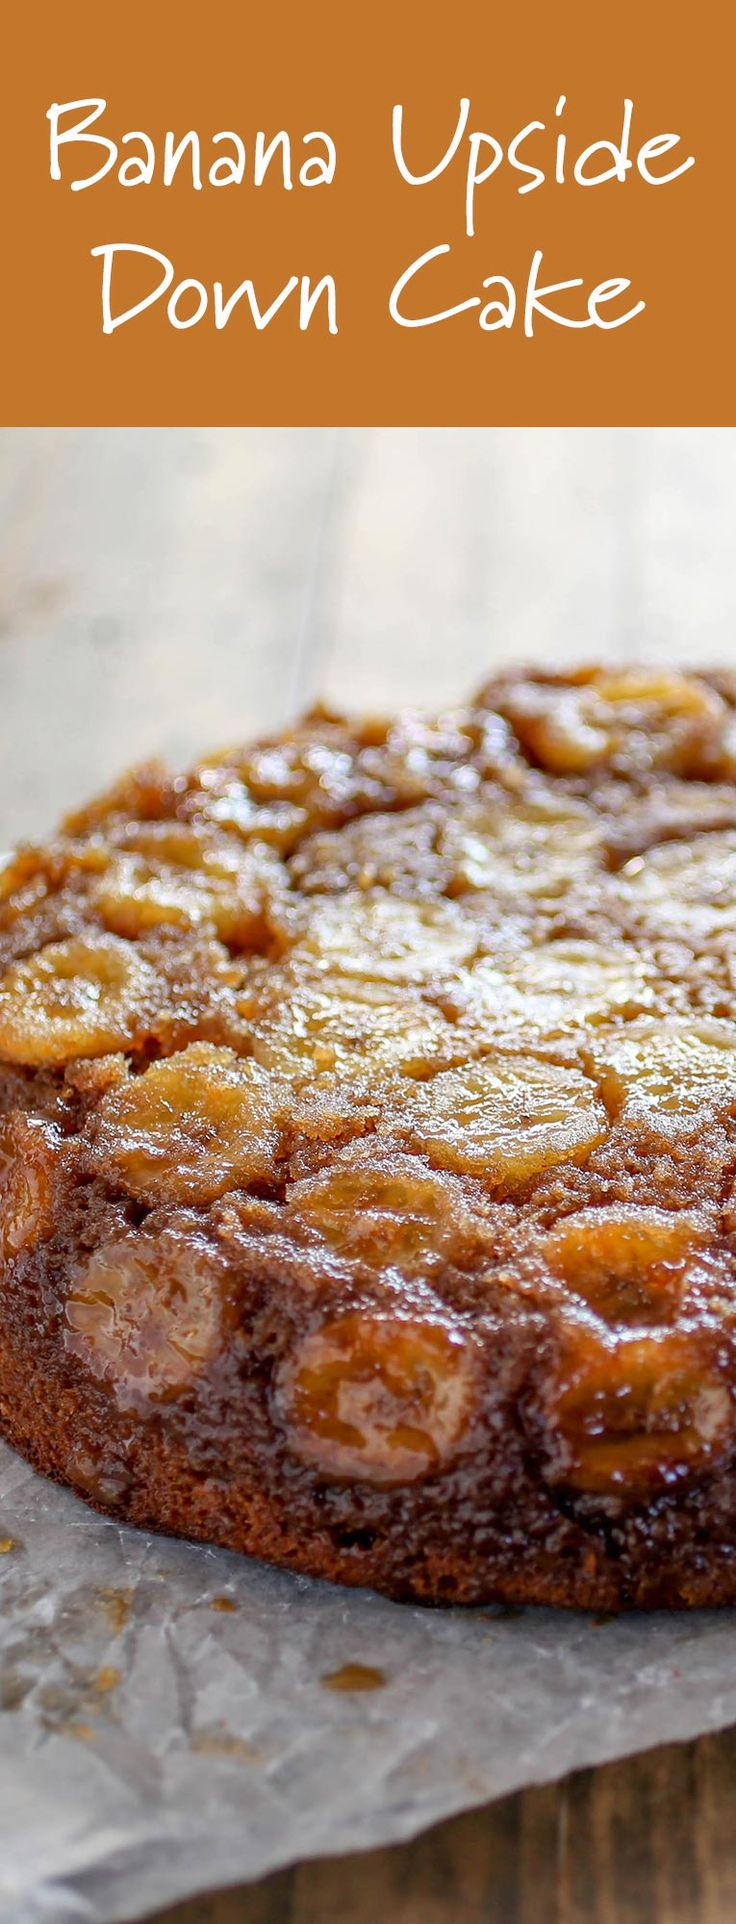 Banana Upside Down Cake-Tired of banana bread but still want to find a use for your ripe bananas? This delish, easy (and gorgeous) Banana Upside Down Cake is a photo worthy solution. Lightly spiced and topped with fresh bananas and caramelized brown sugar, this sweet treat recipe is equally at home on the breakfast table or the dessert table. Great for holiday parties and celebrations year-round, guests of all ages will love this yummy treat.